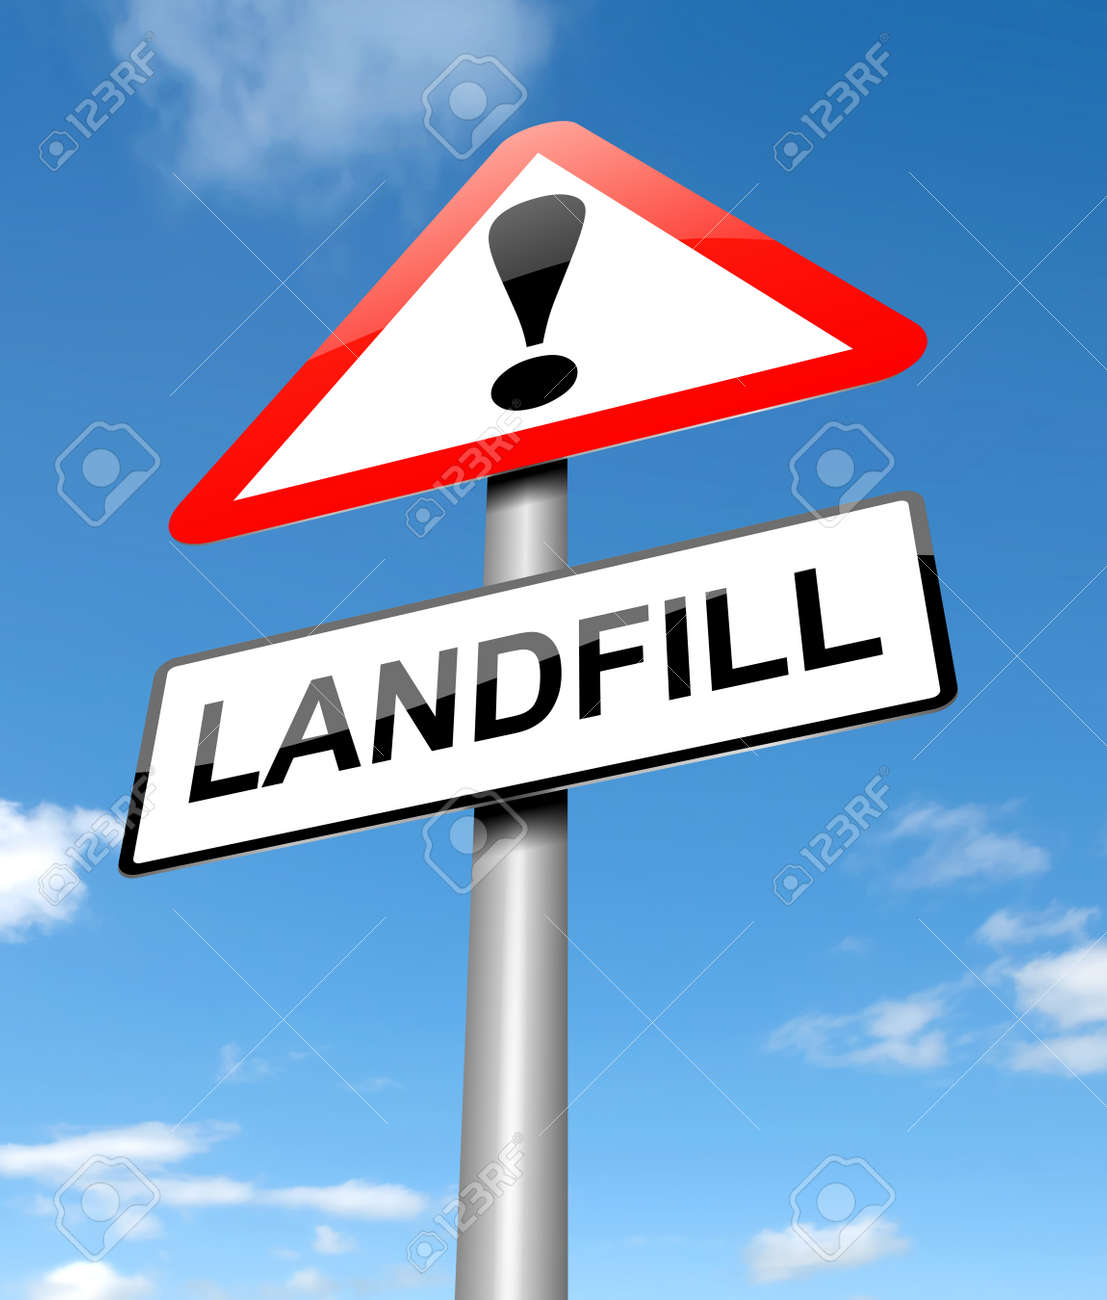 Illustration depicting a sign with a landfill concept. Stock Photo - 22366700